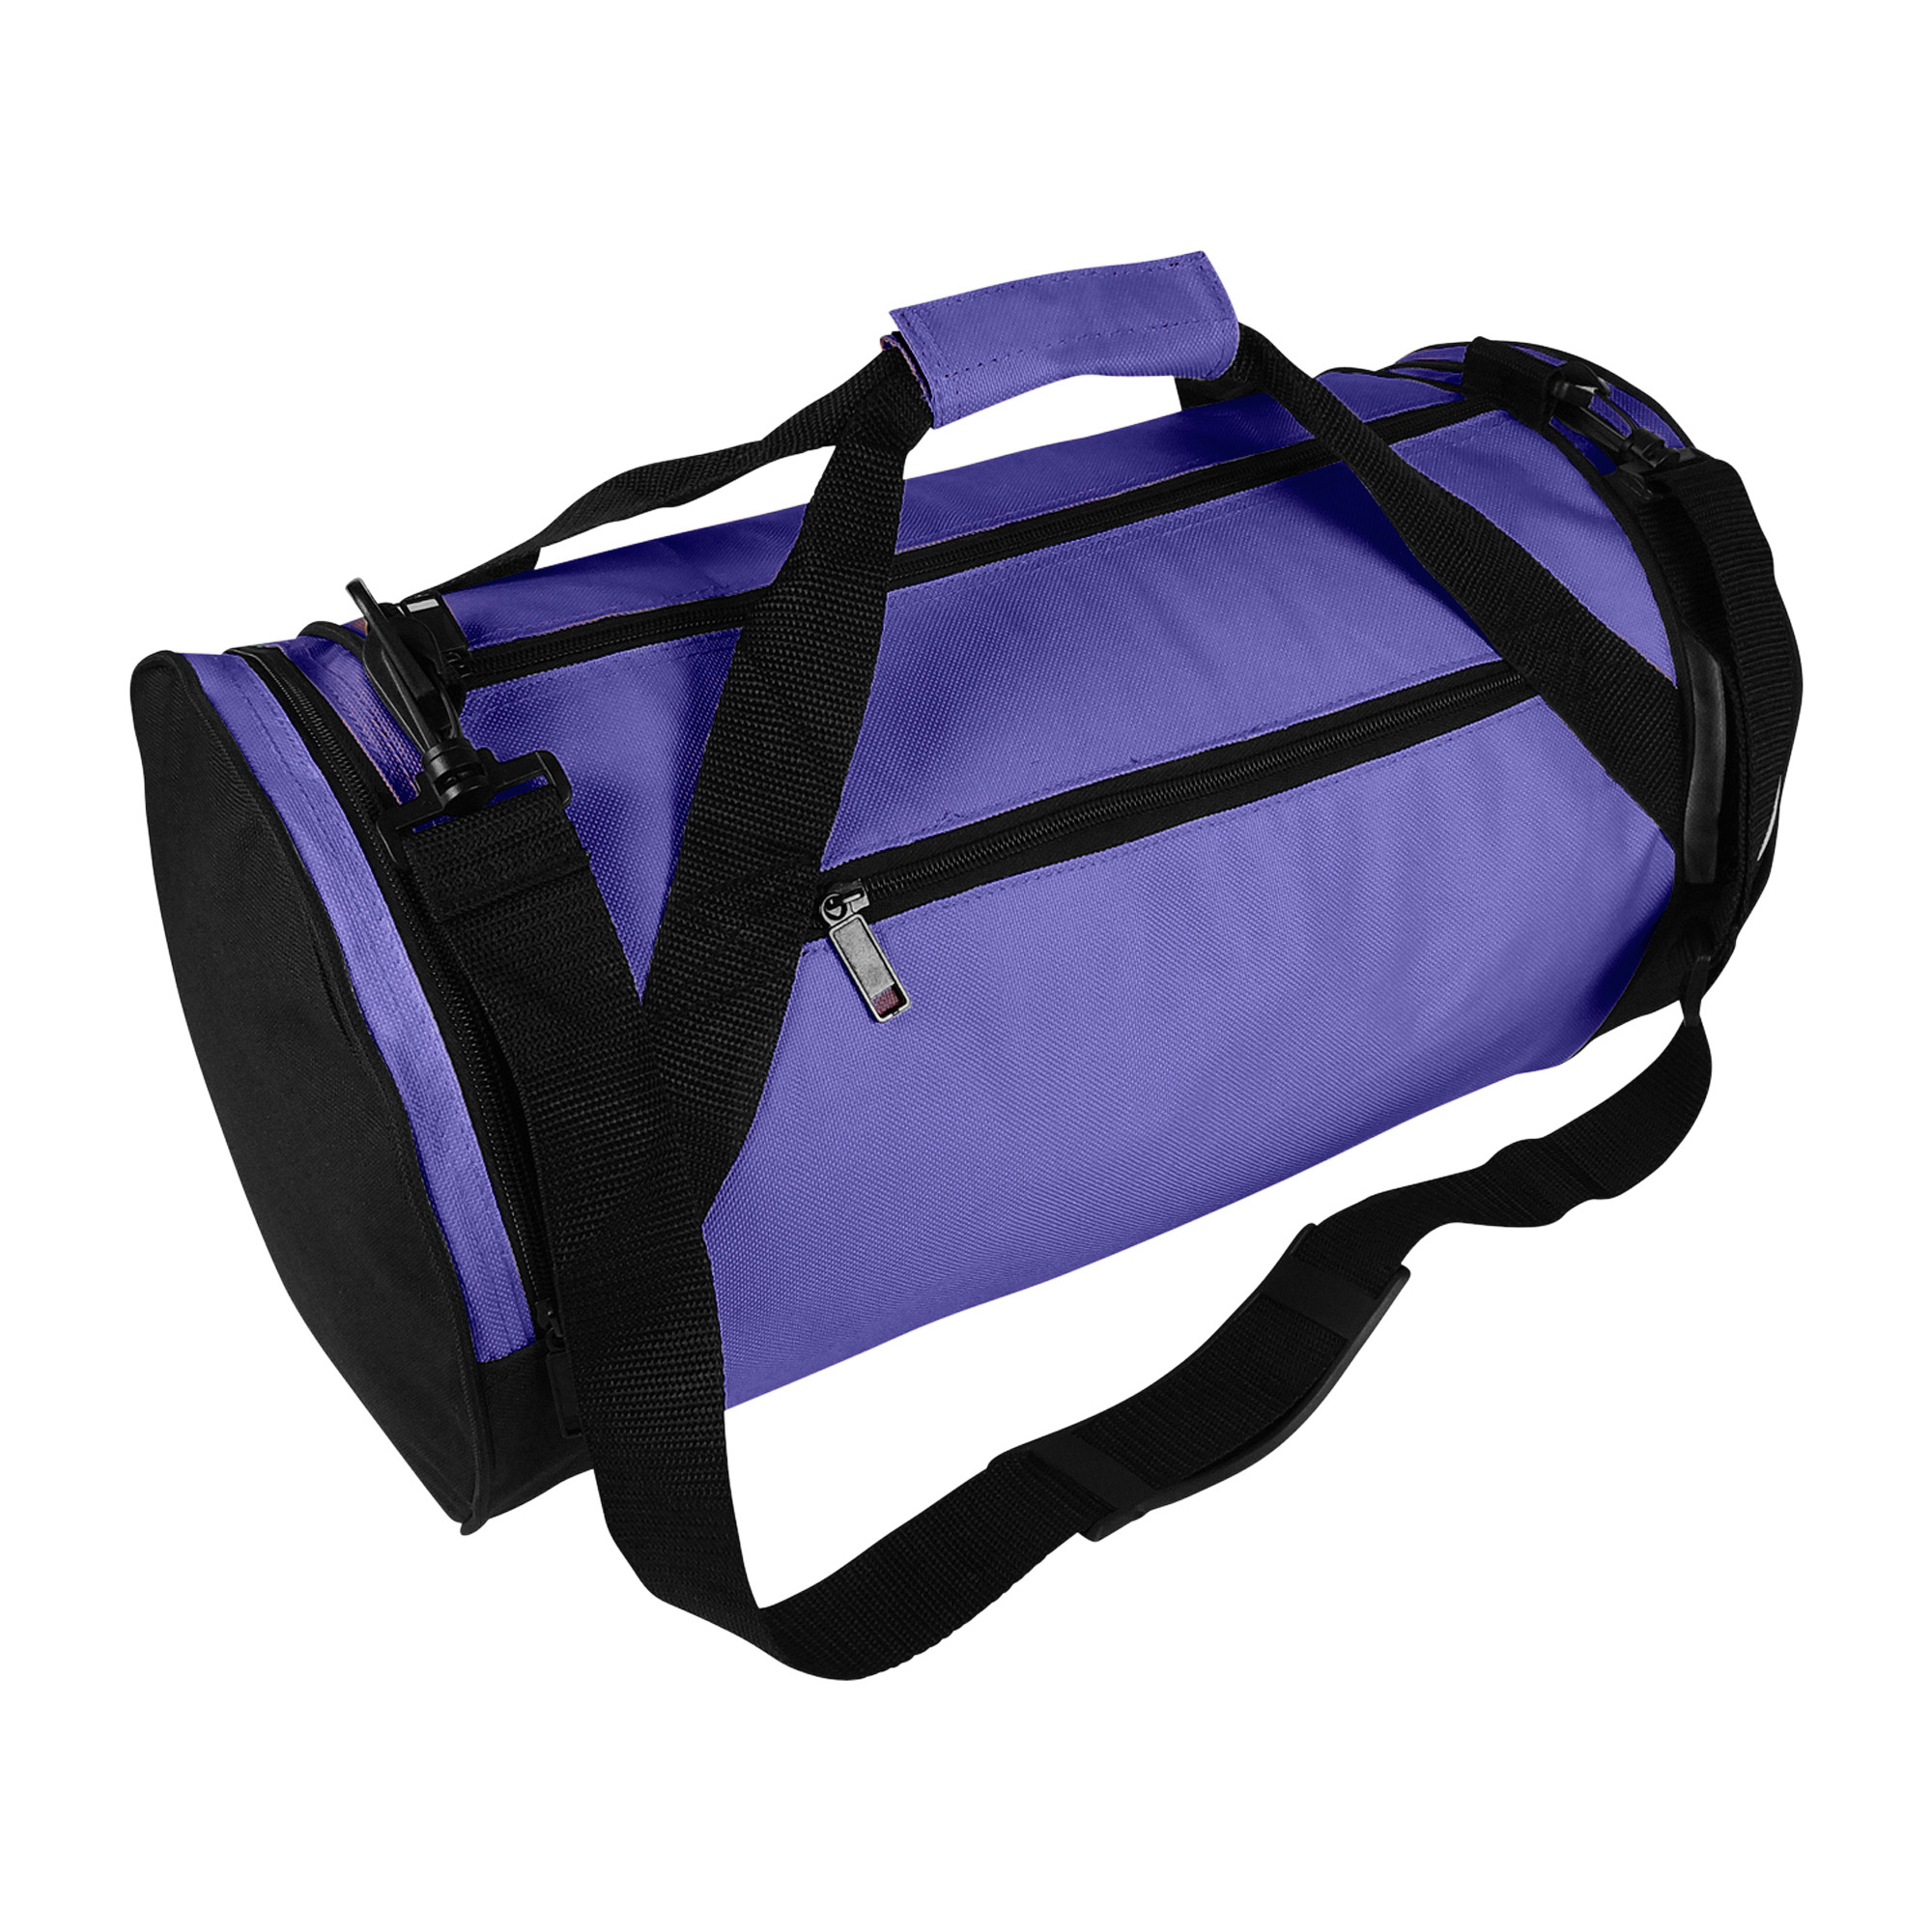 "DALIX 18"" Round Duffle Bag Flexible Roll Gym Traveling Bag in Black"